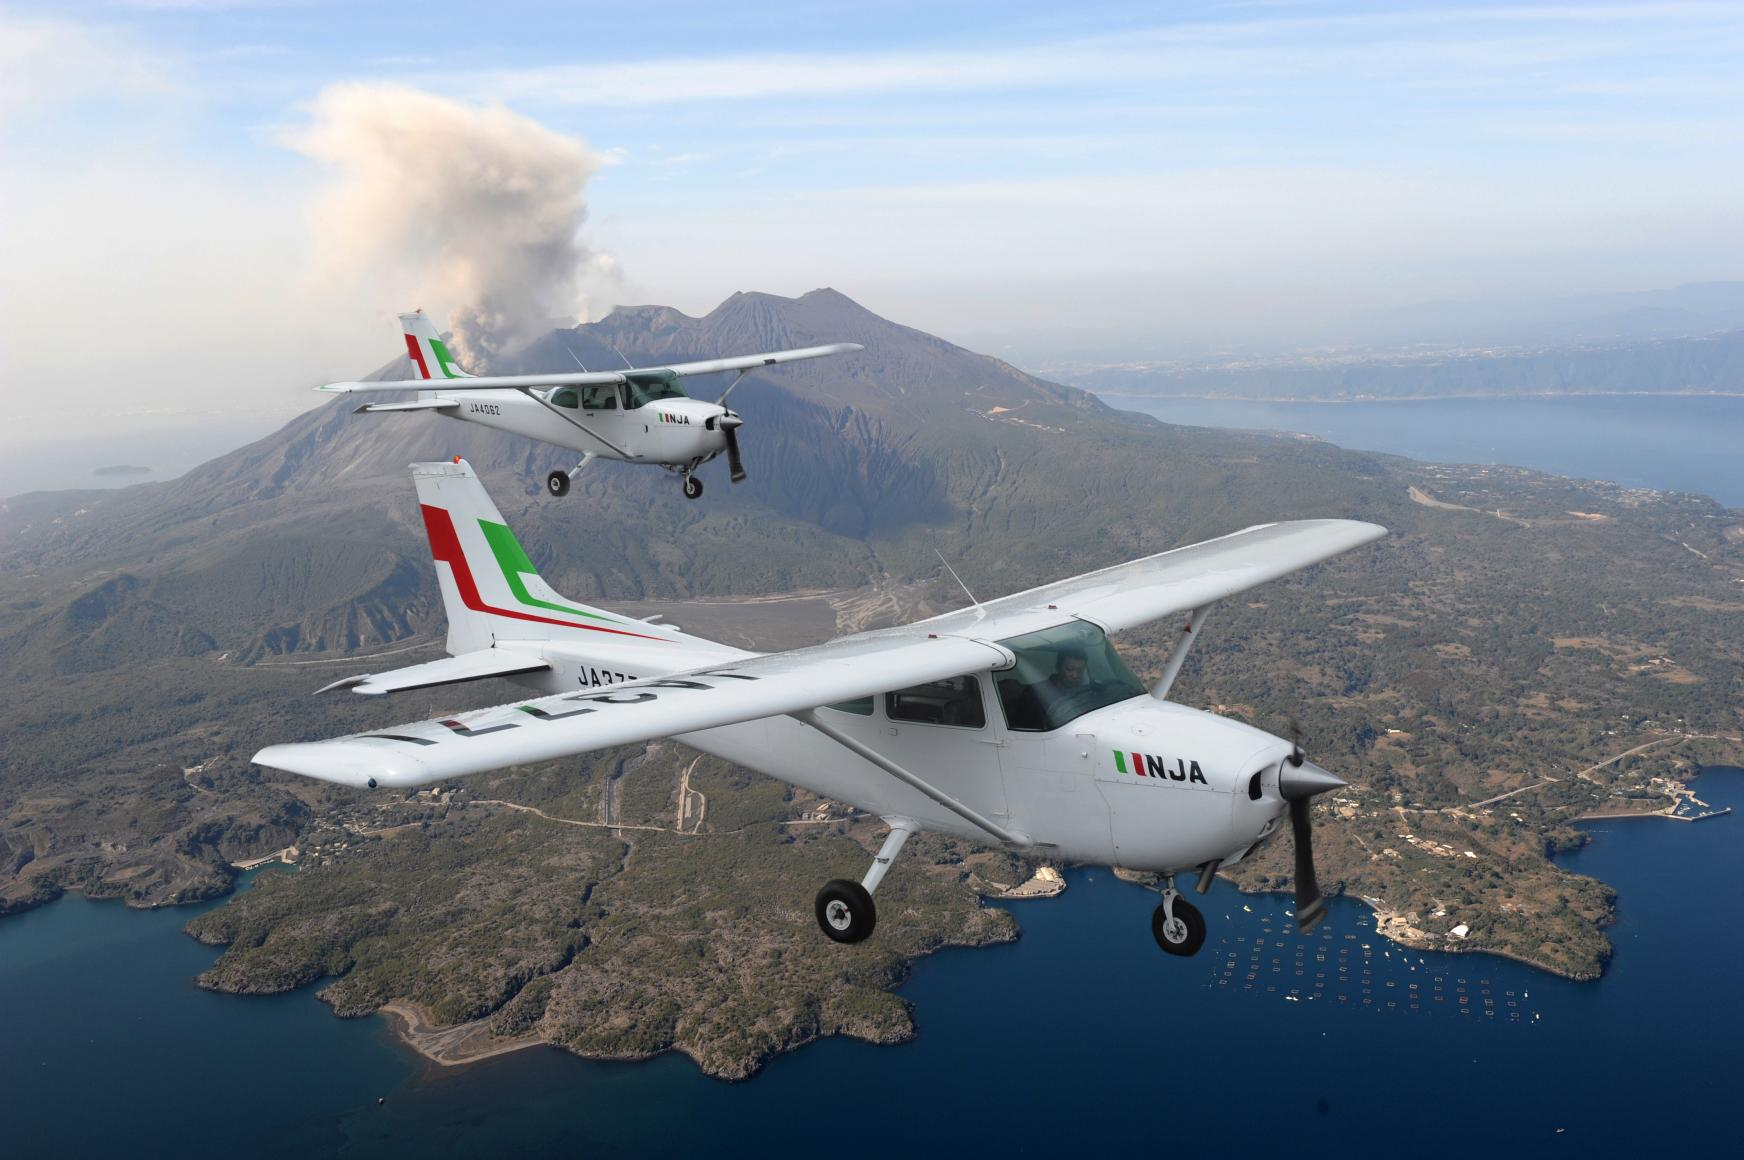 Sightseeing flight: Sakurajima course-1